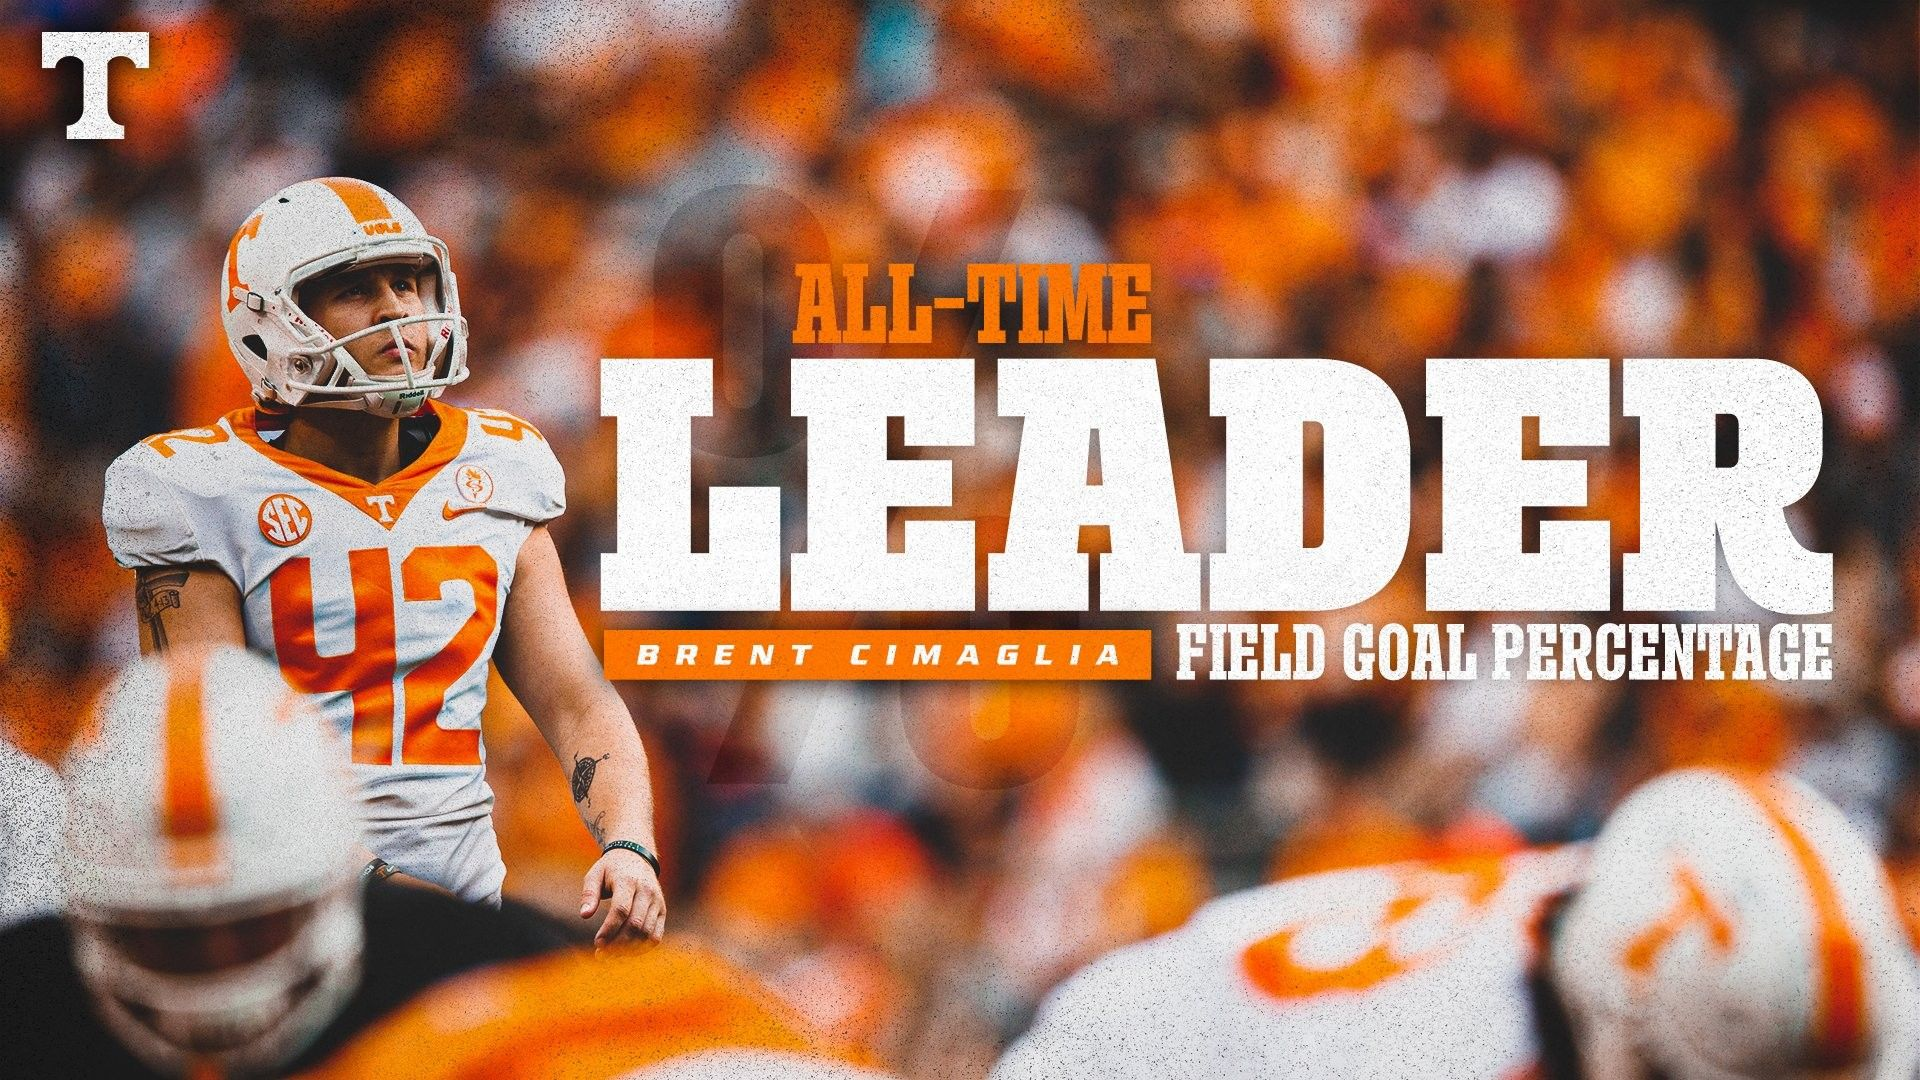 Pin by robert harmon on TENNESSEE FOOTBALL in 2020 Tennessee 1920x1080